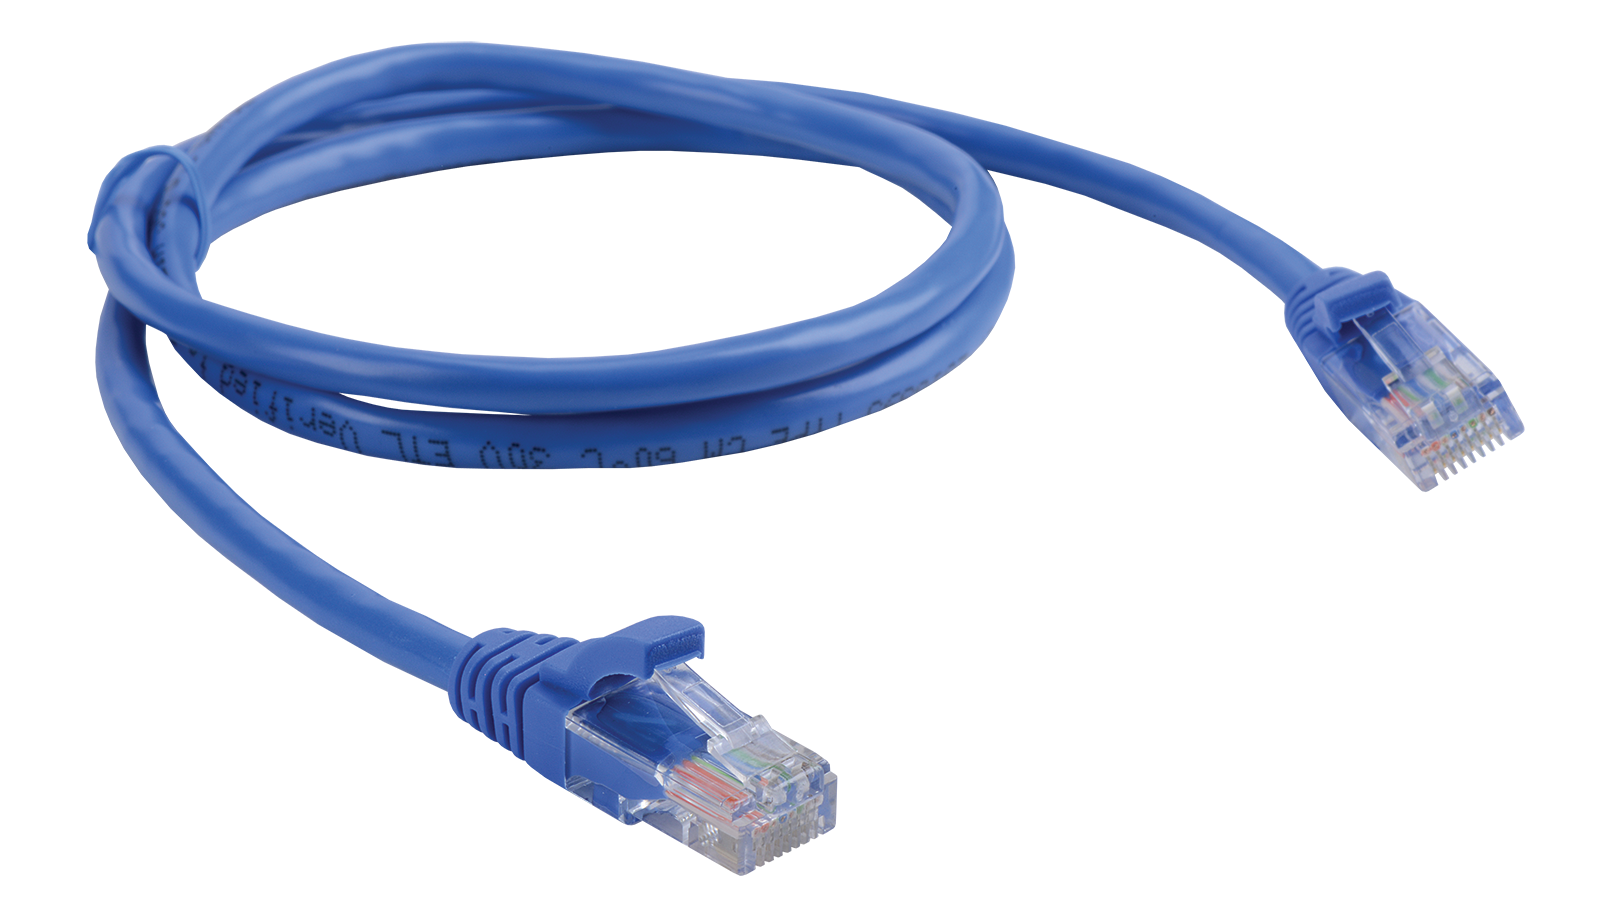 Cable transparent computer. Ethernet png images pluspng